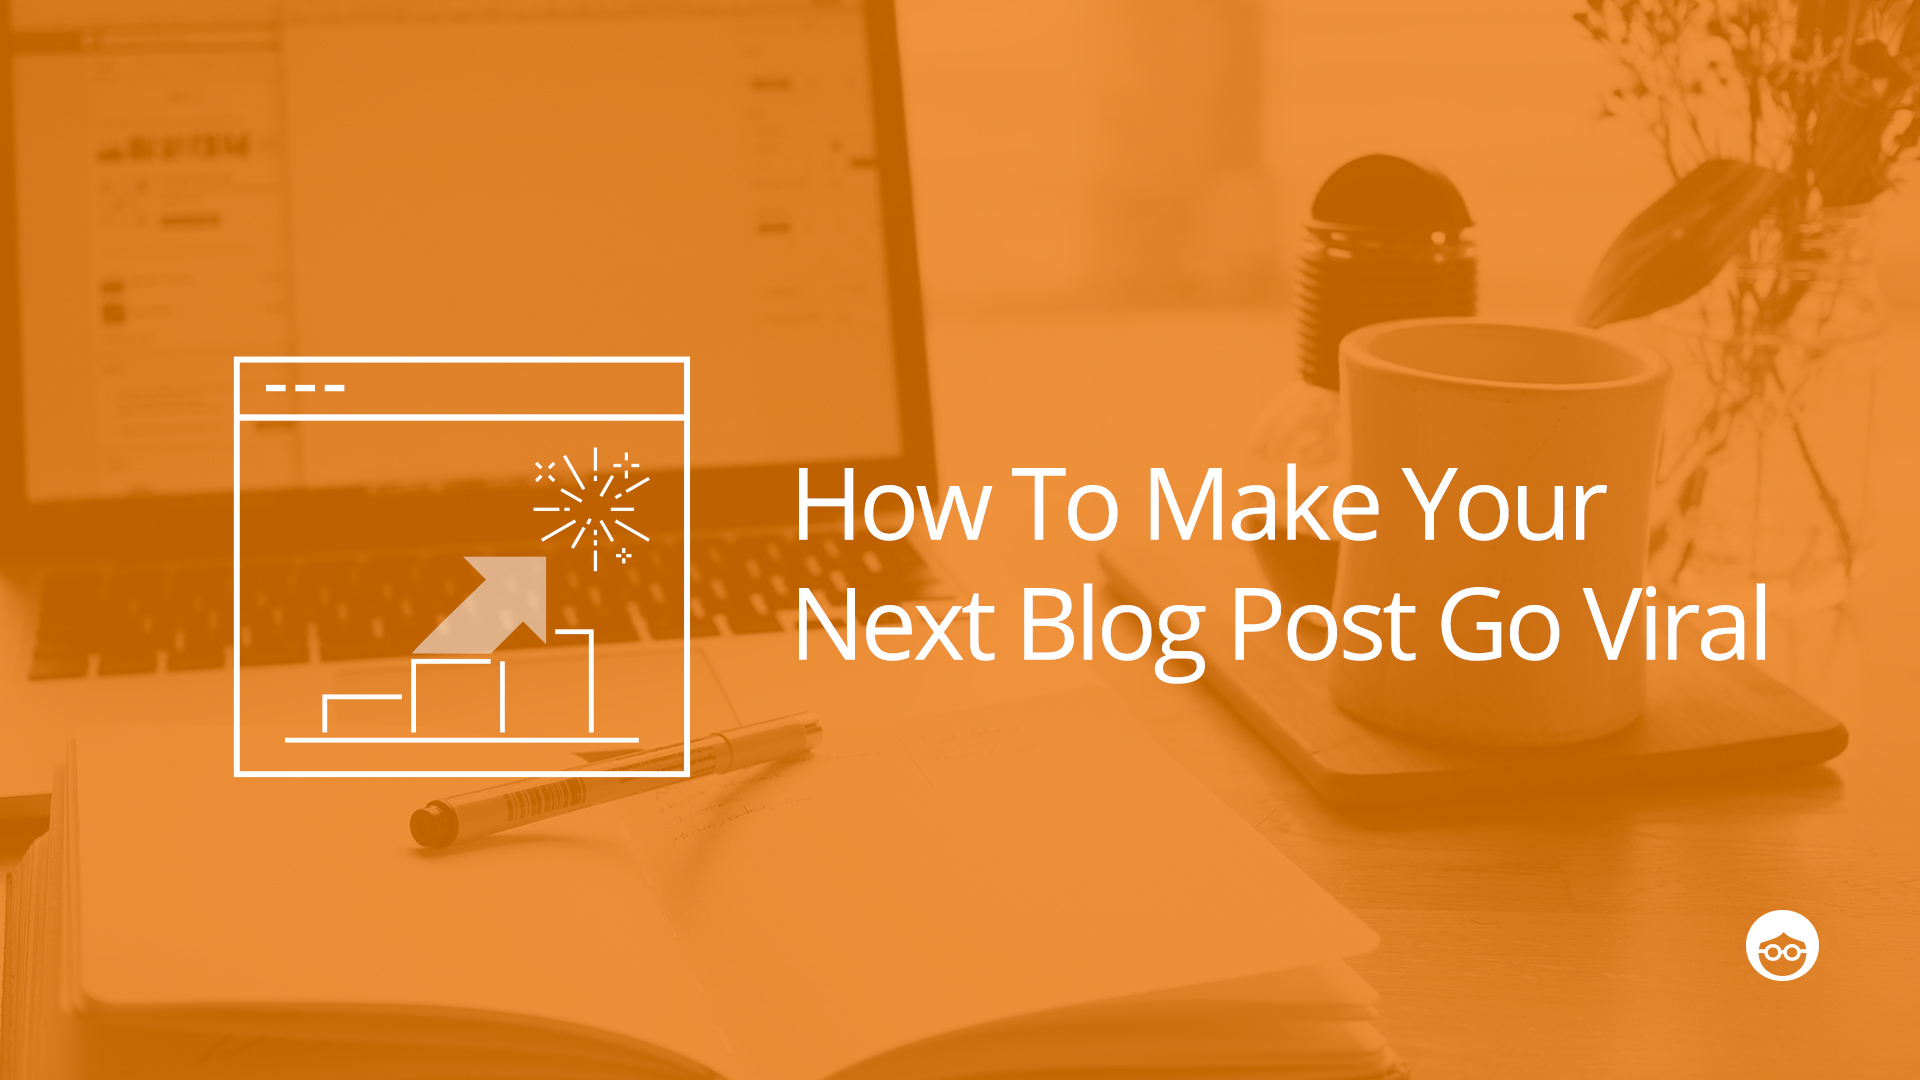 How To Make Your Next Blog Post Go Viral